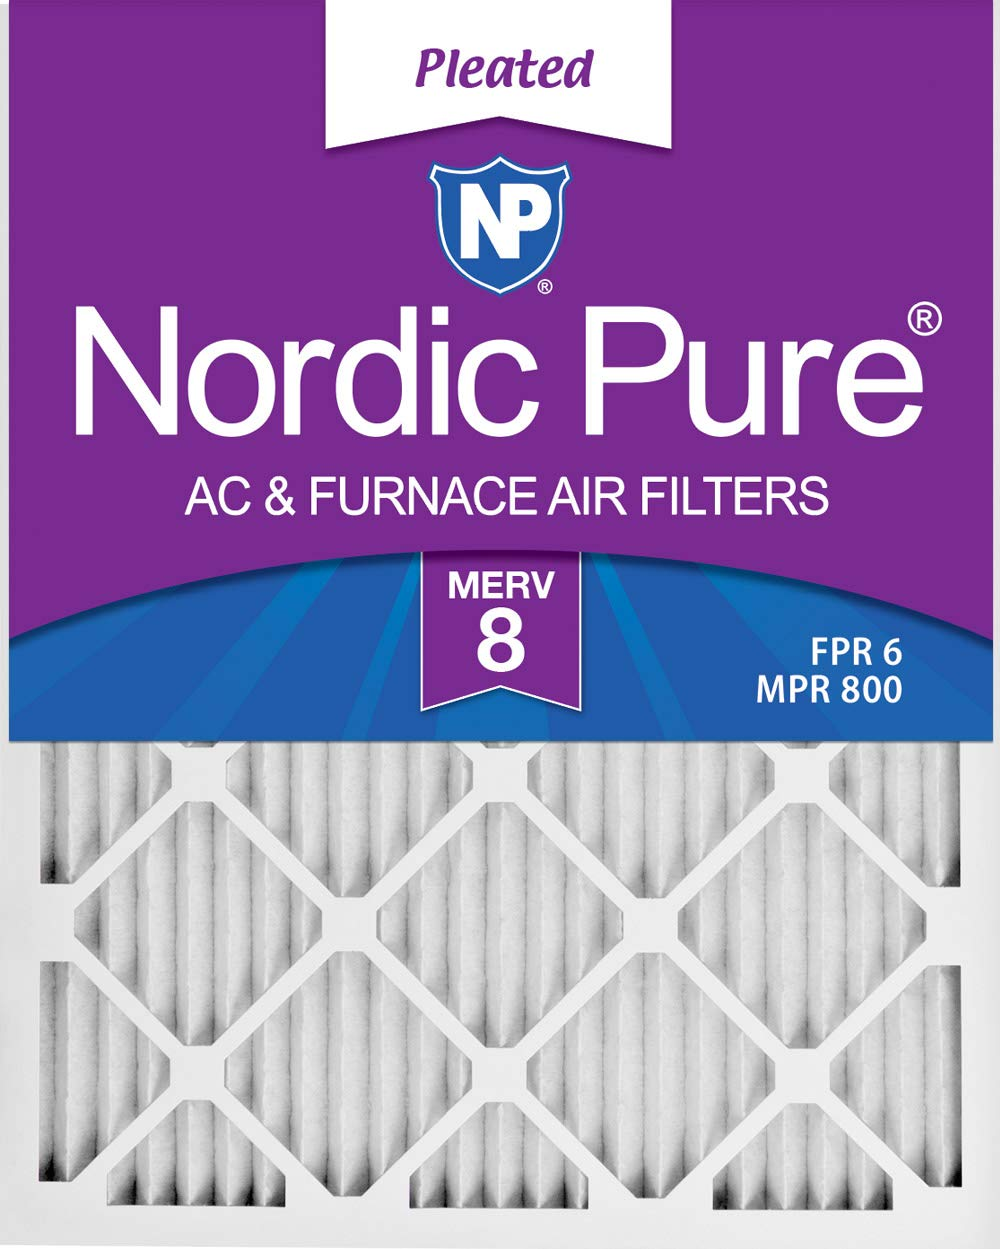 Nordic Pure 20x30x1 MERV 8 Pleated AC Furnace Air Filters 6 Pack, 6 PACK, 6 PACK by Nordic Pure